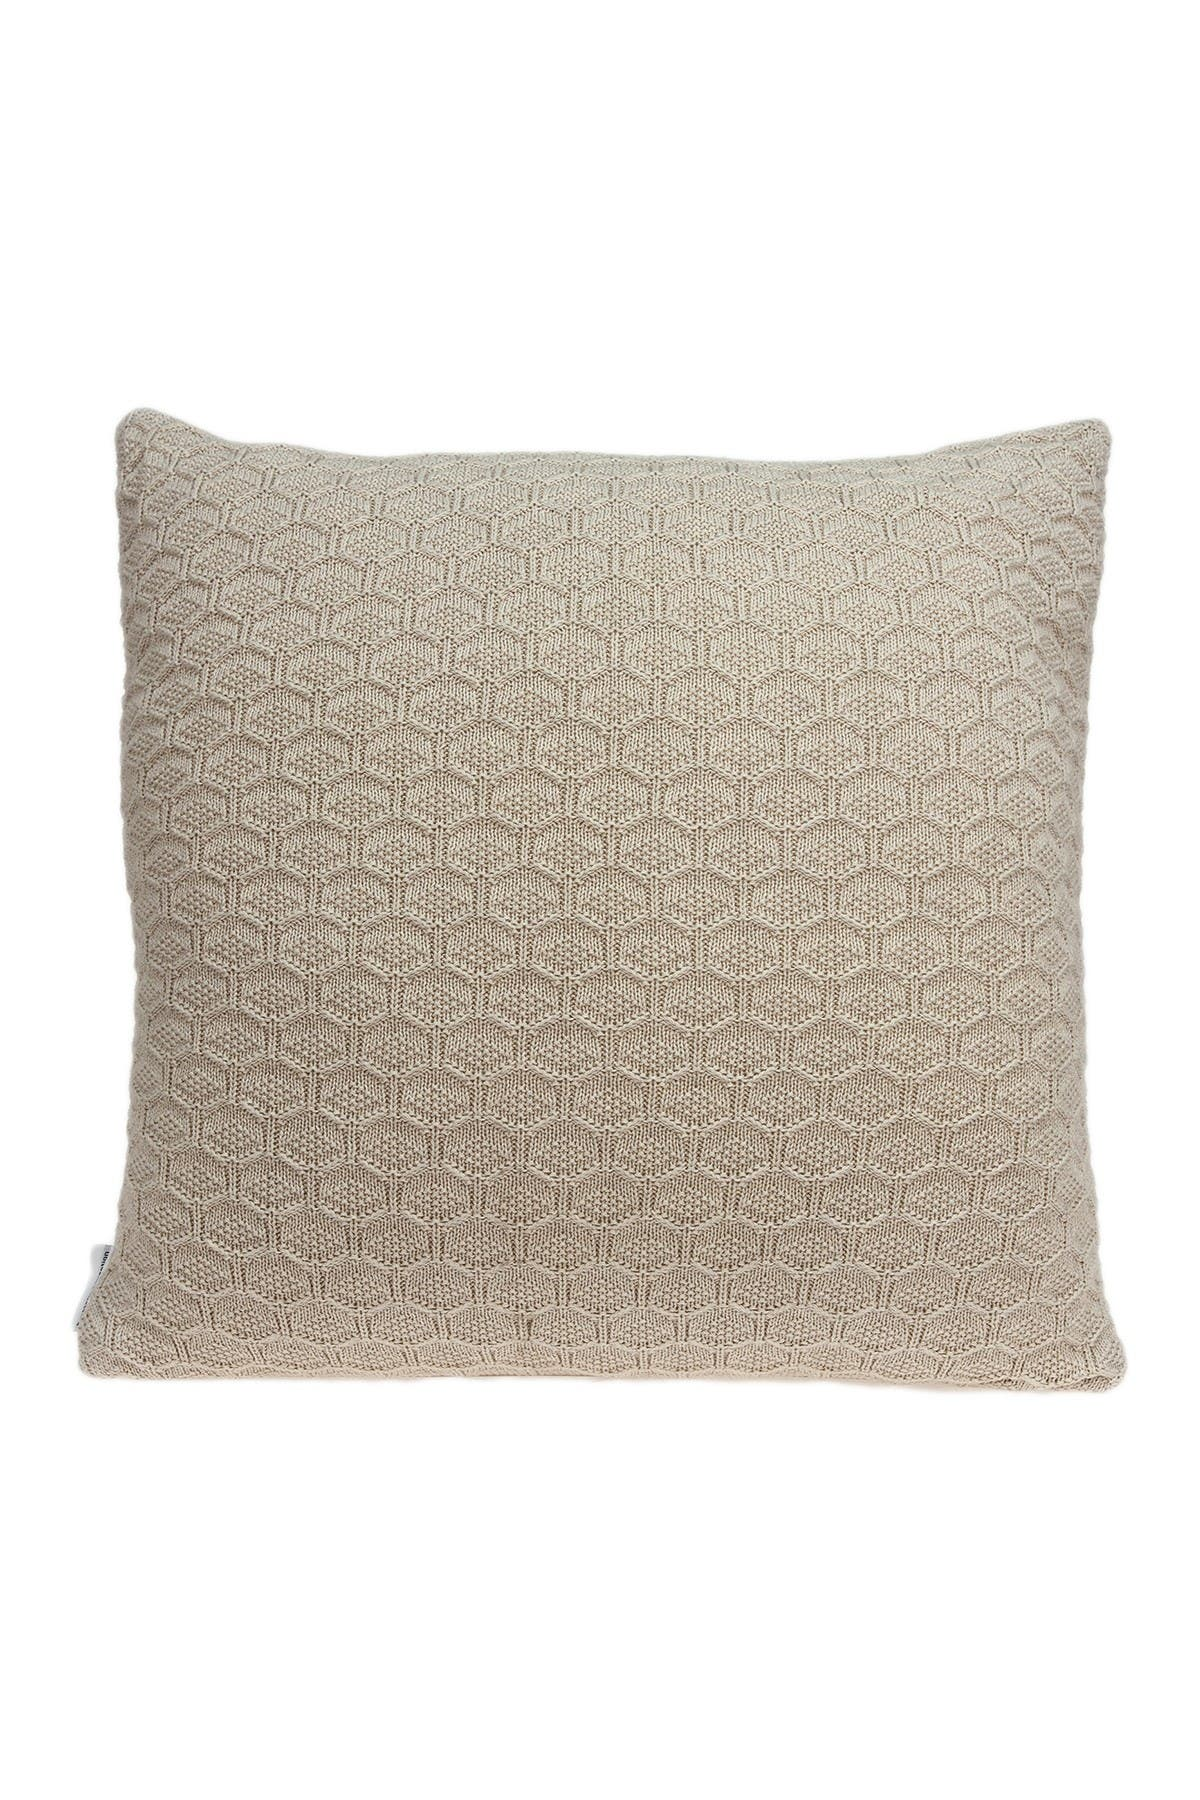 "Image of Parkland Collection Mira Transitional Pillow - 20"" x 20"" - Tan"